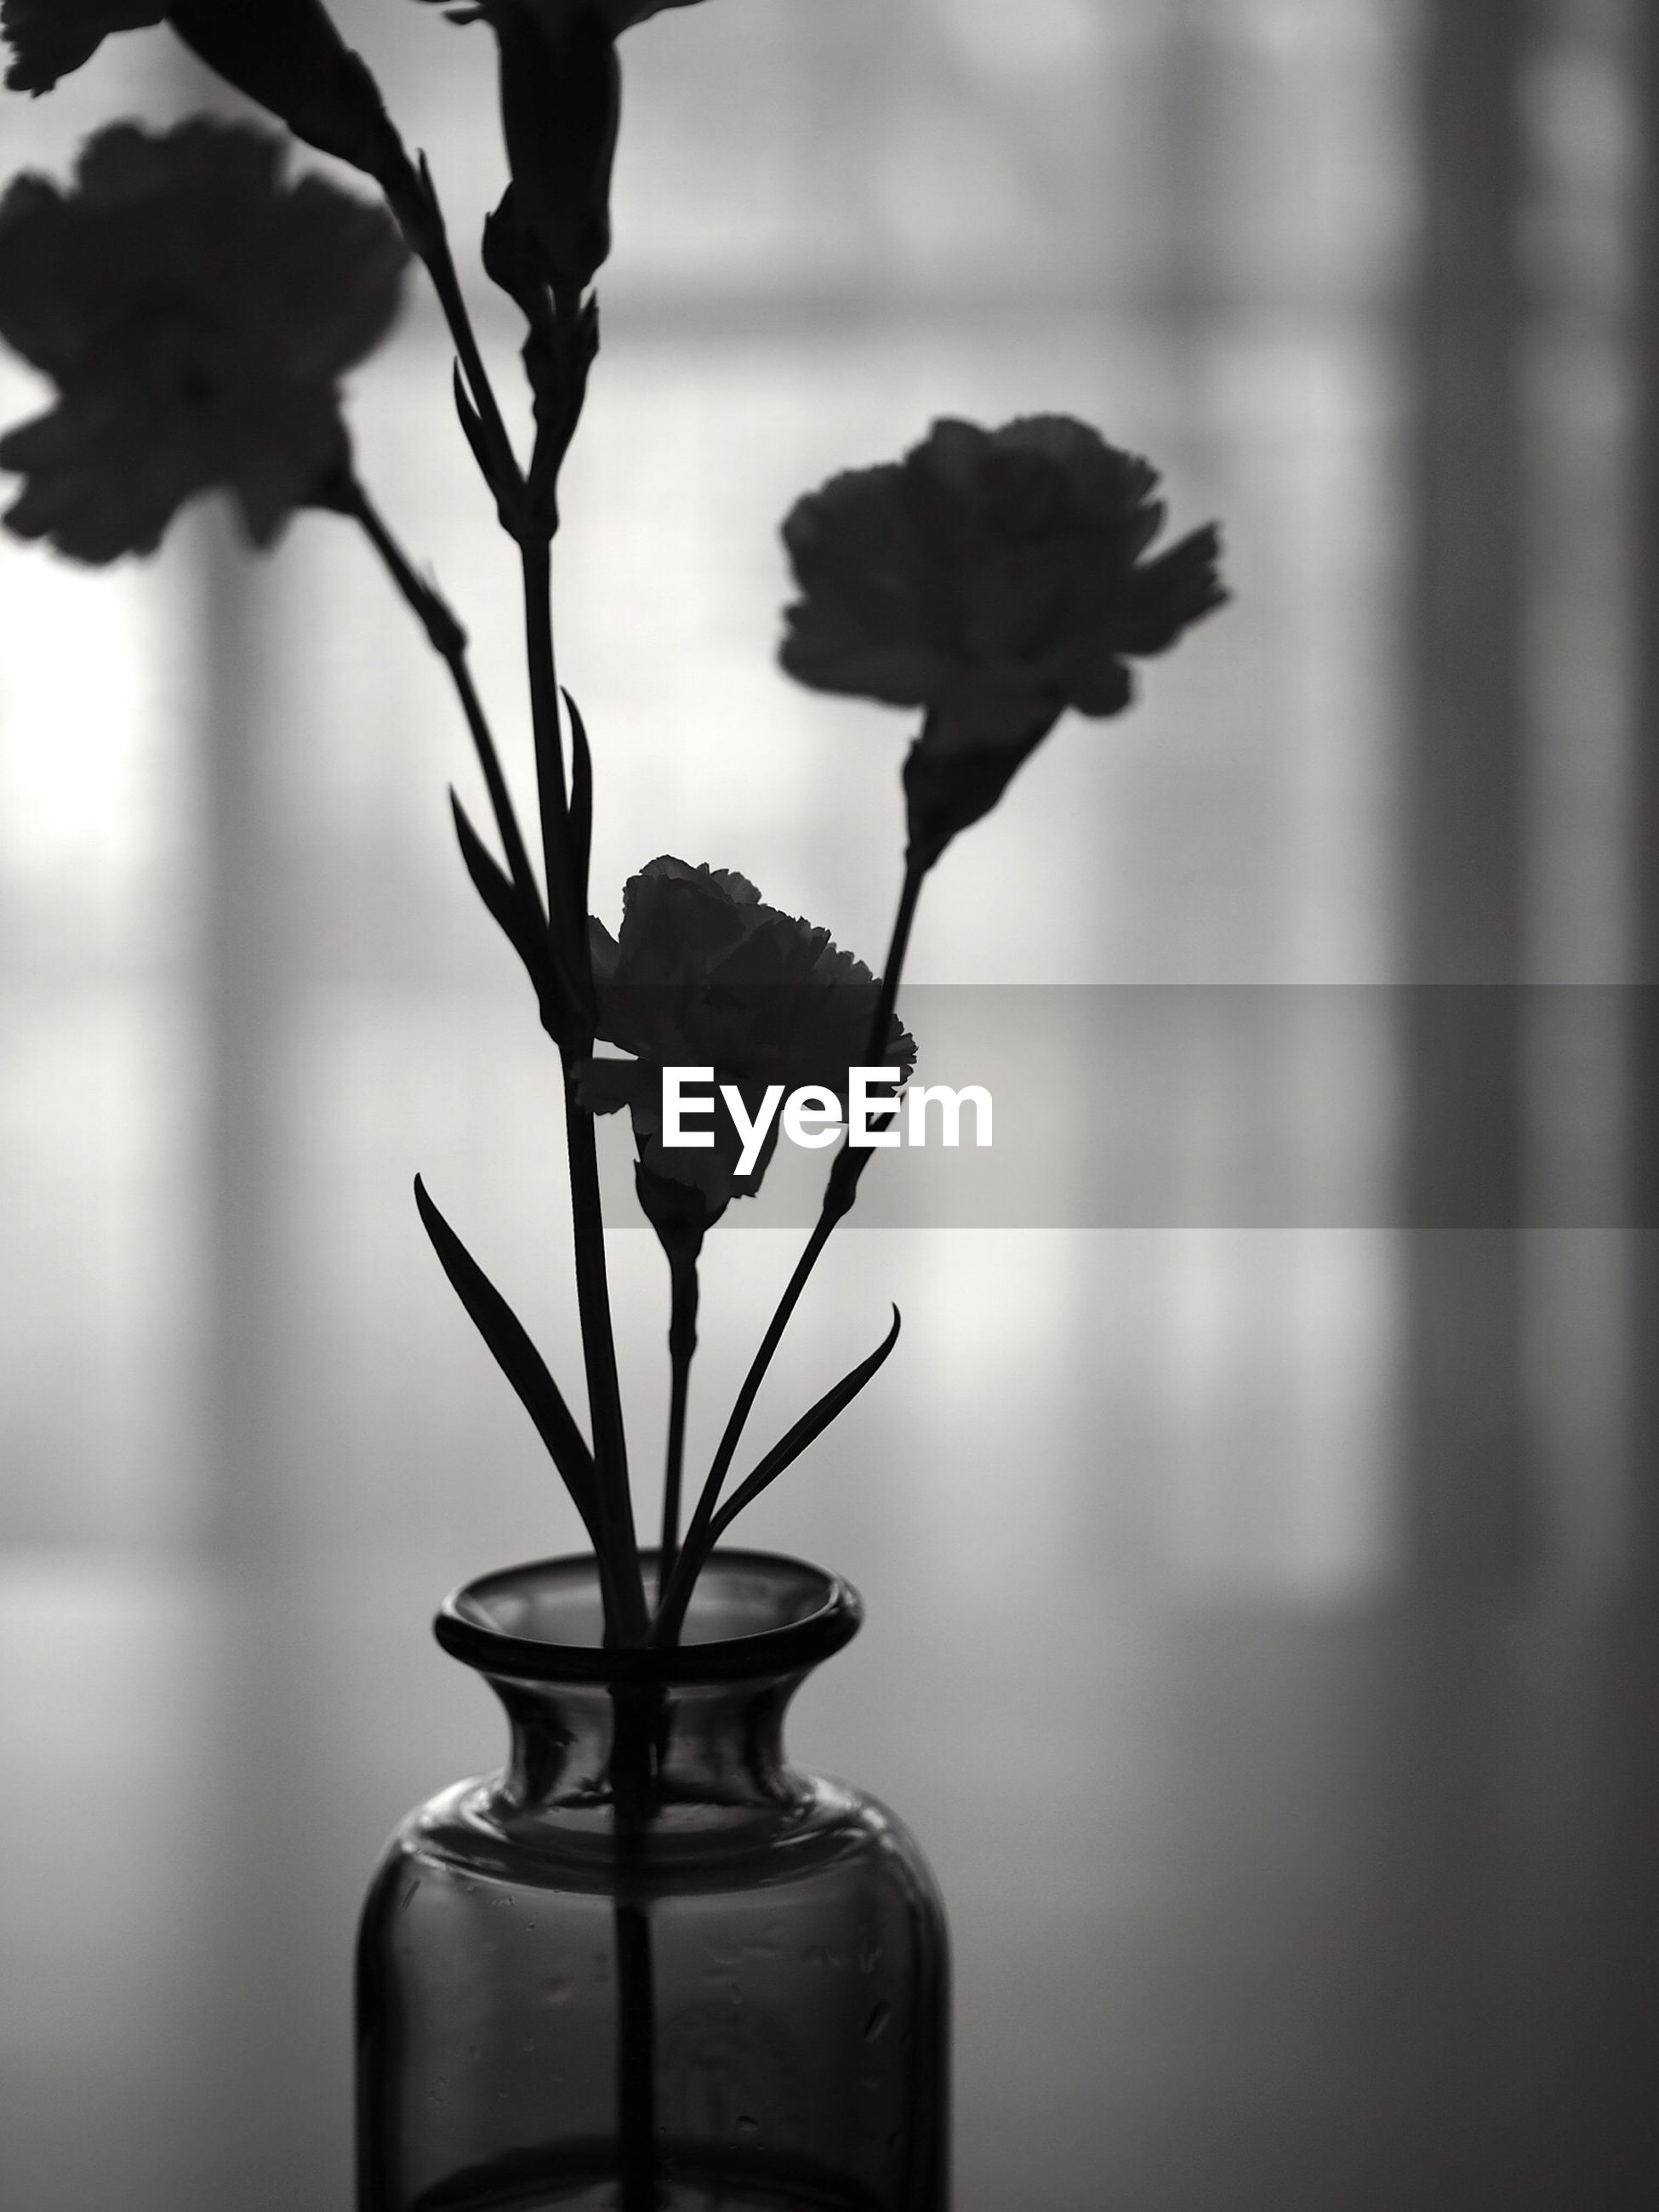 flower, plant, fragility, growth, close-up, indoors, potted plant, focus on foreground, vase, leaf, stem, wall - building feature, nature, home interior, window, glass - material, freshness, no people, day, built structure